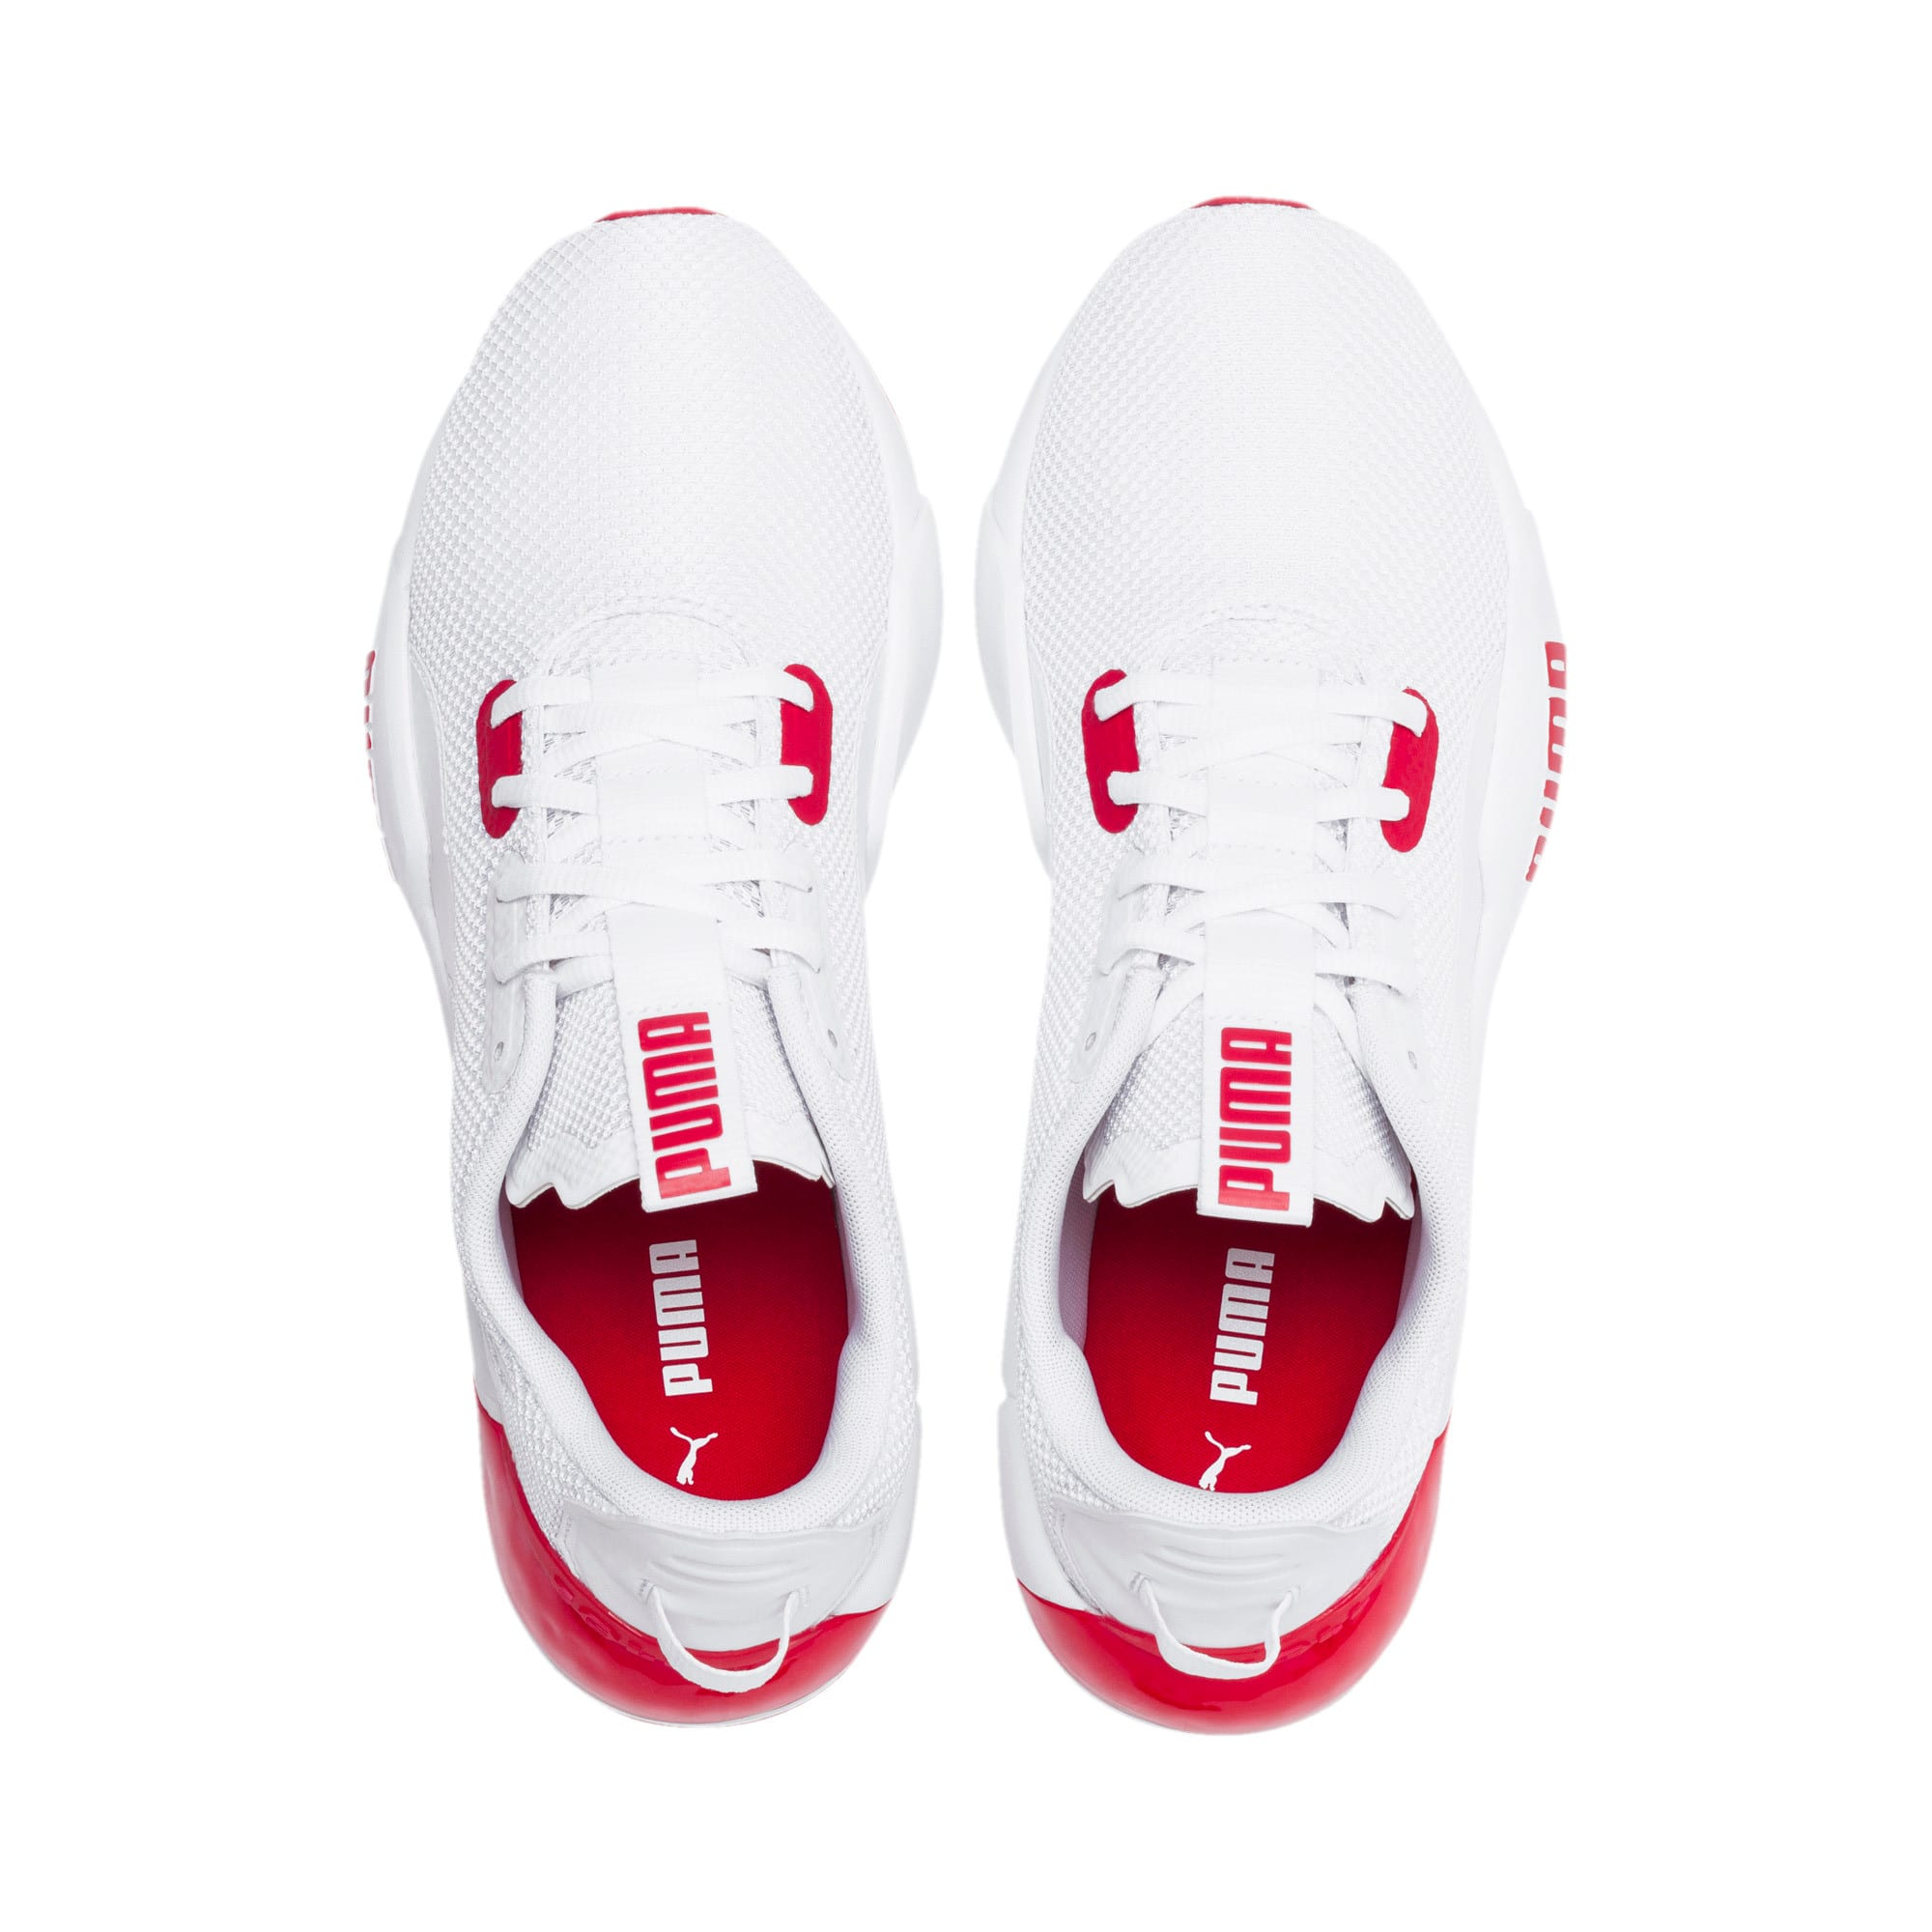 Thumbnail 7 of CELL Phase Men's Training Shoes, Puma White-High Risk Red, medium